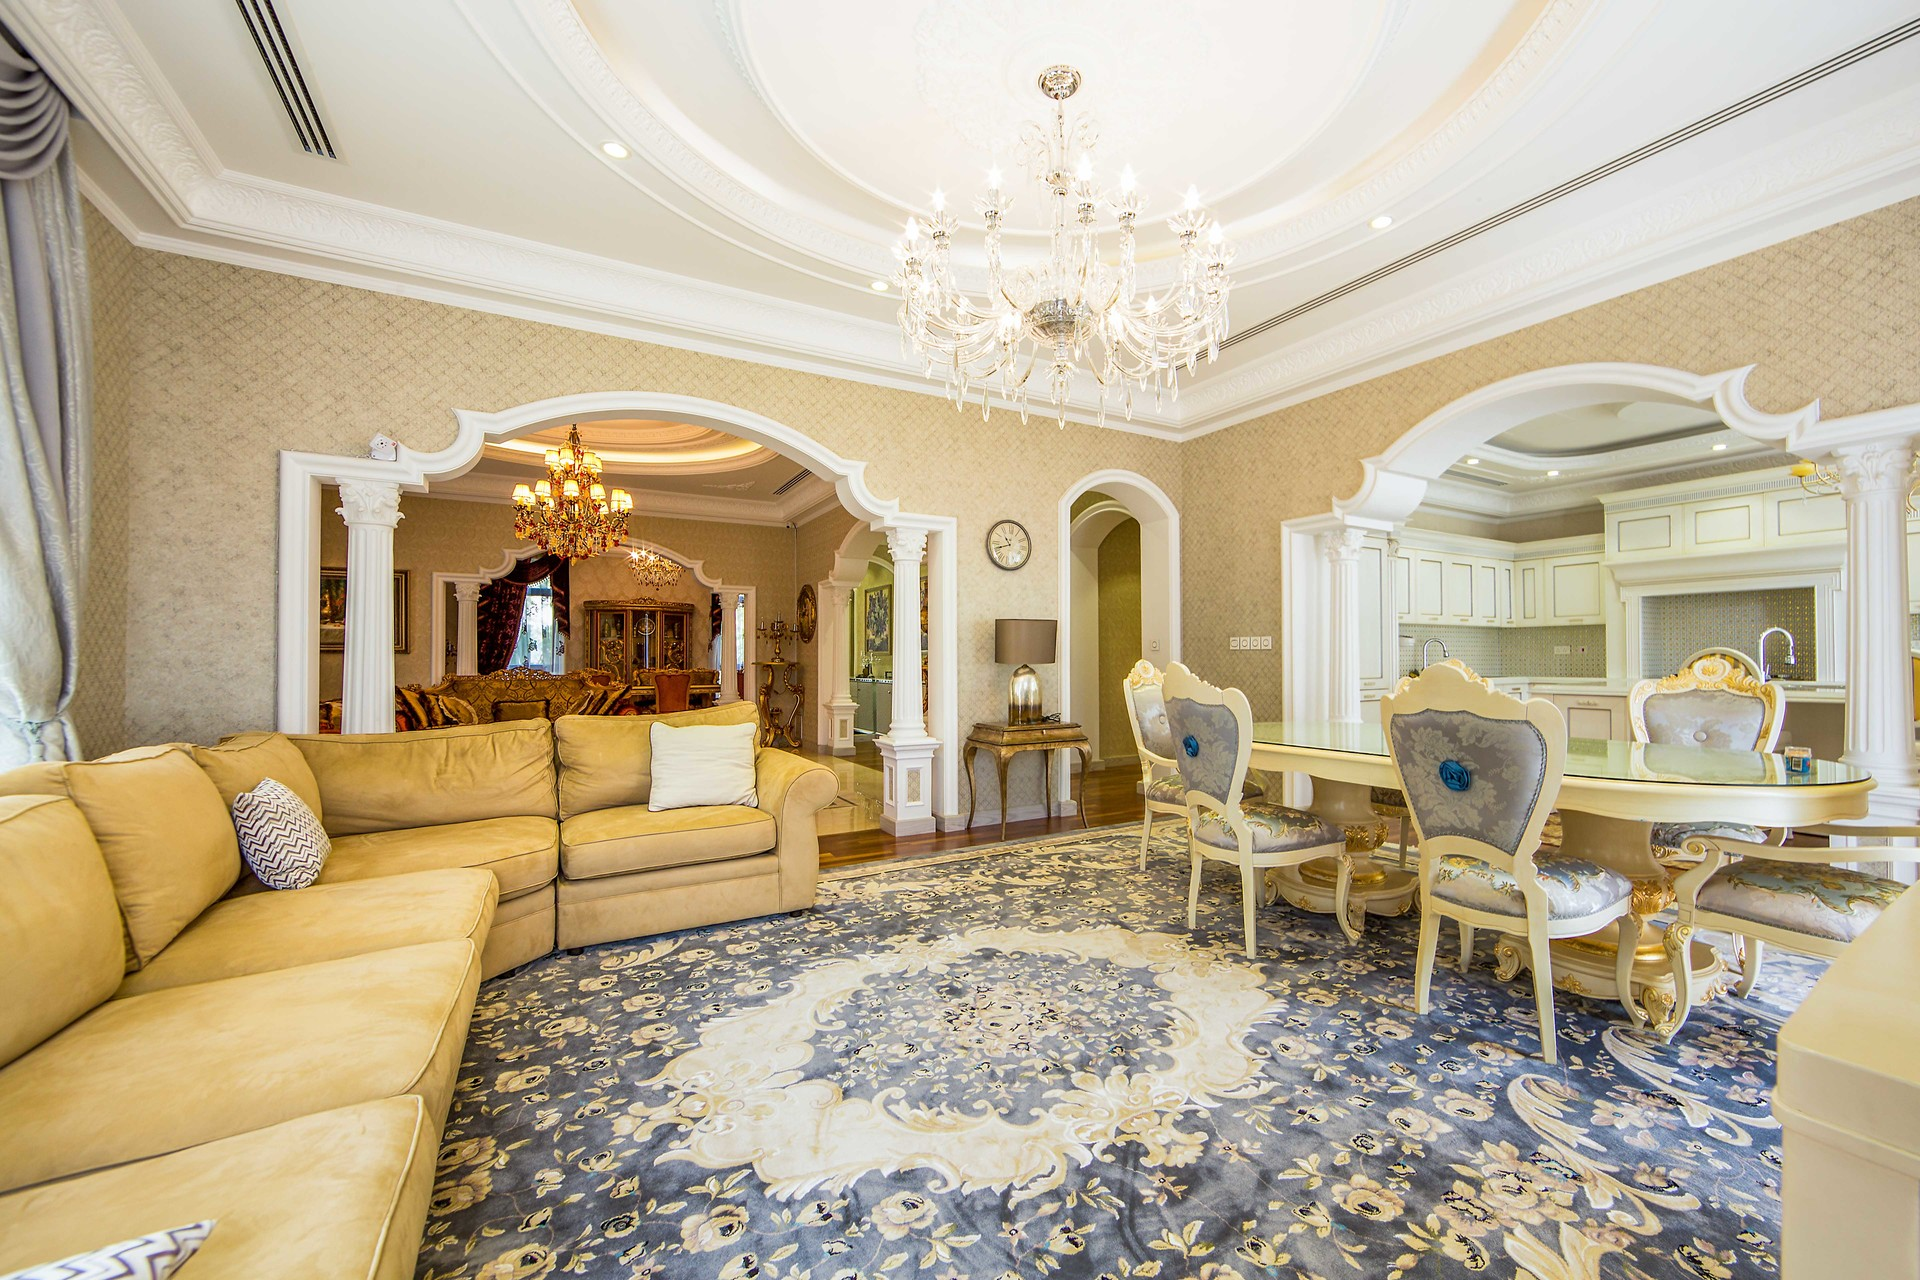 Marvin beig emirates living emirates hills forest real estate l57a2167 edit